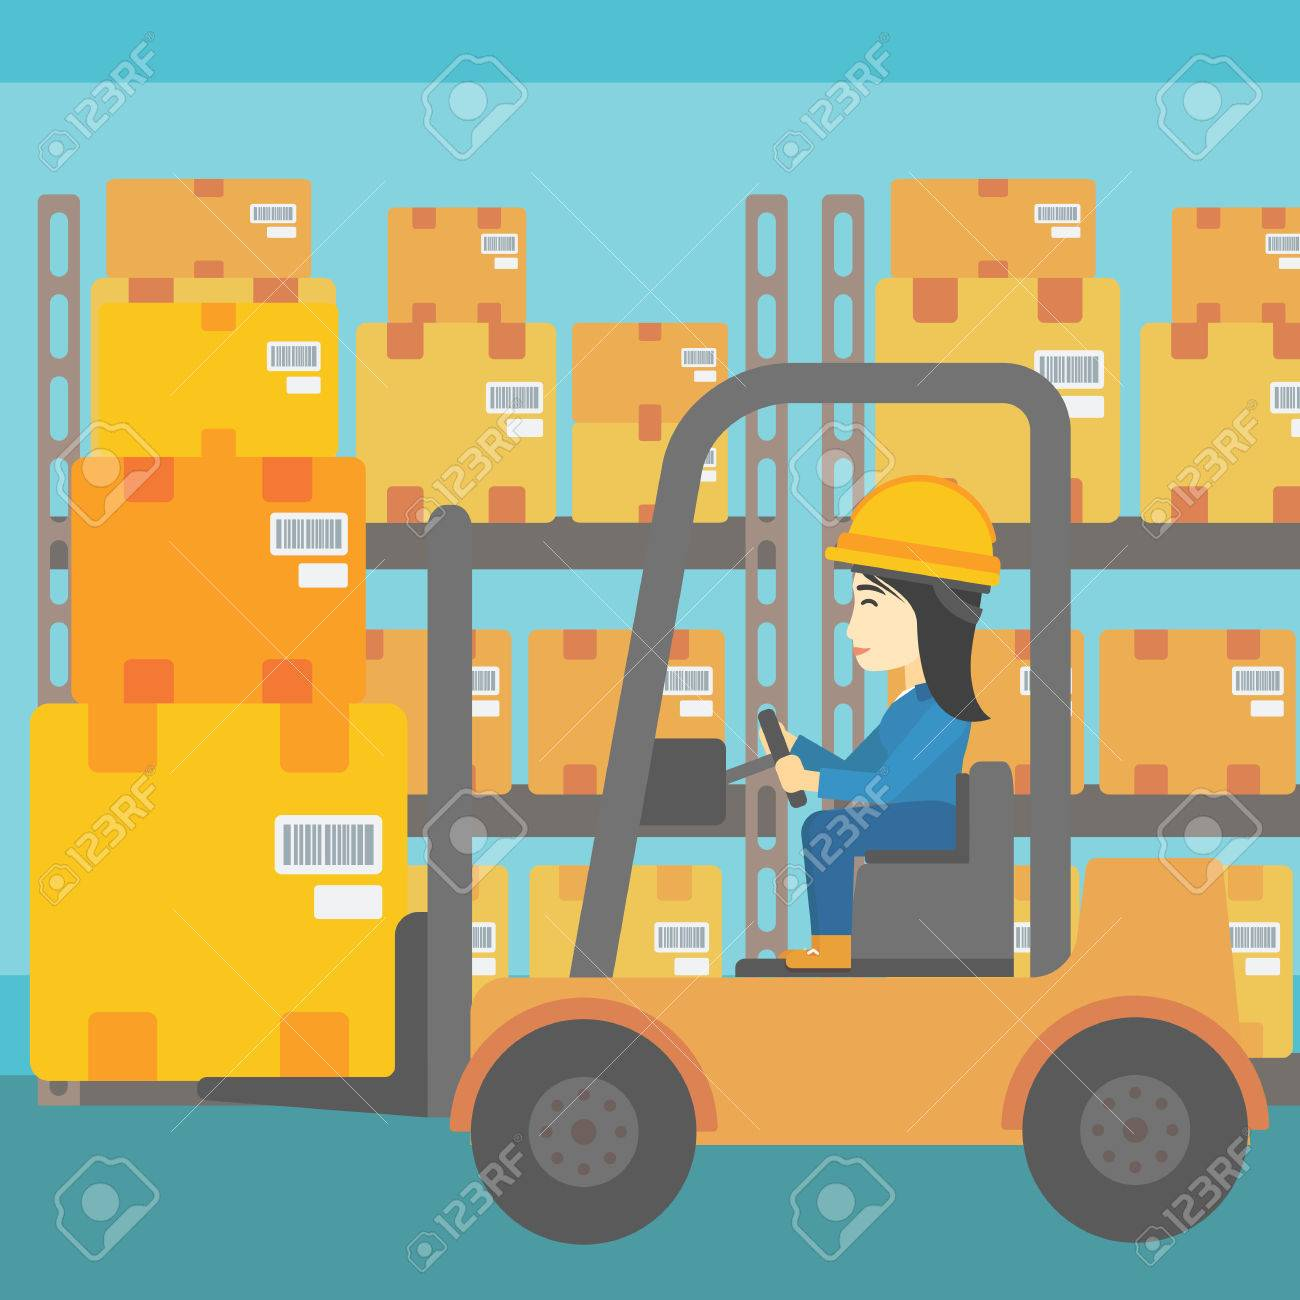 Warehouse driver clipart banner library stock Forklift clipart warehouse worker - 112 transparent clip ... banner library stock